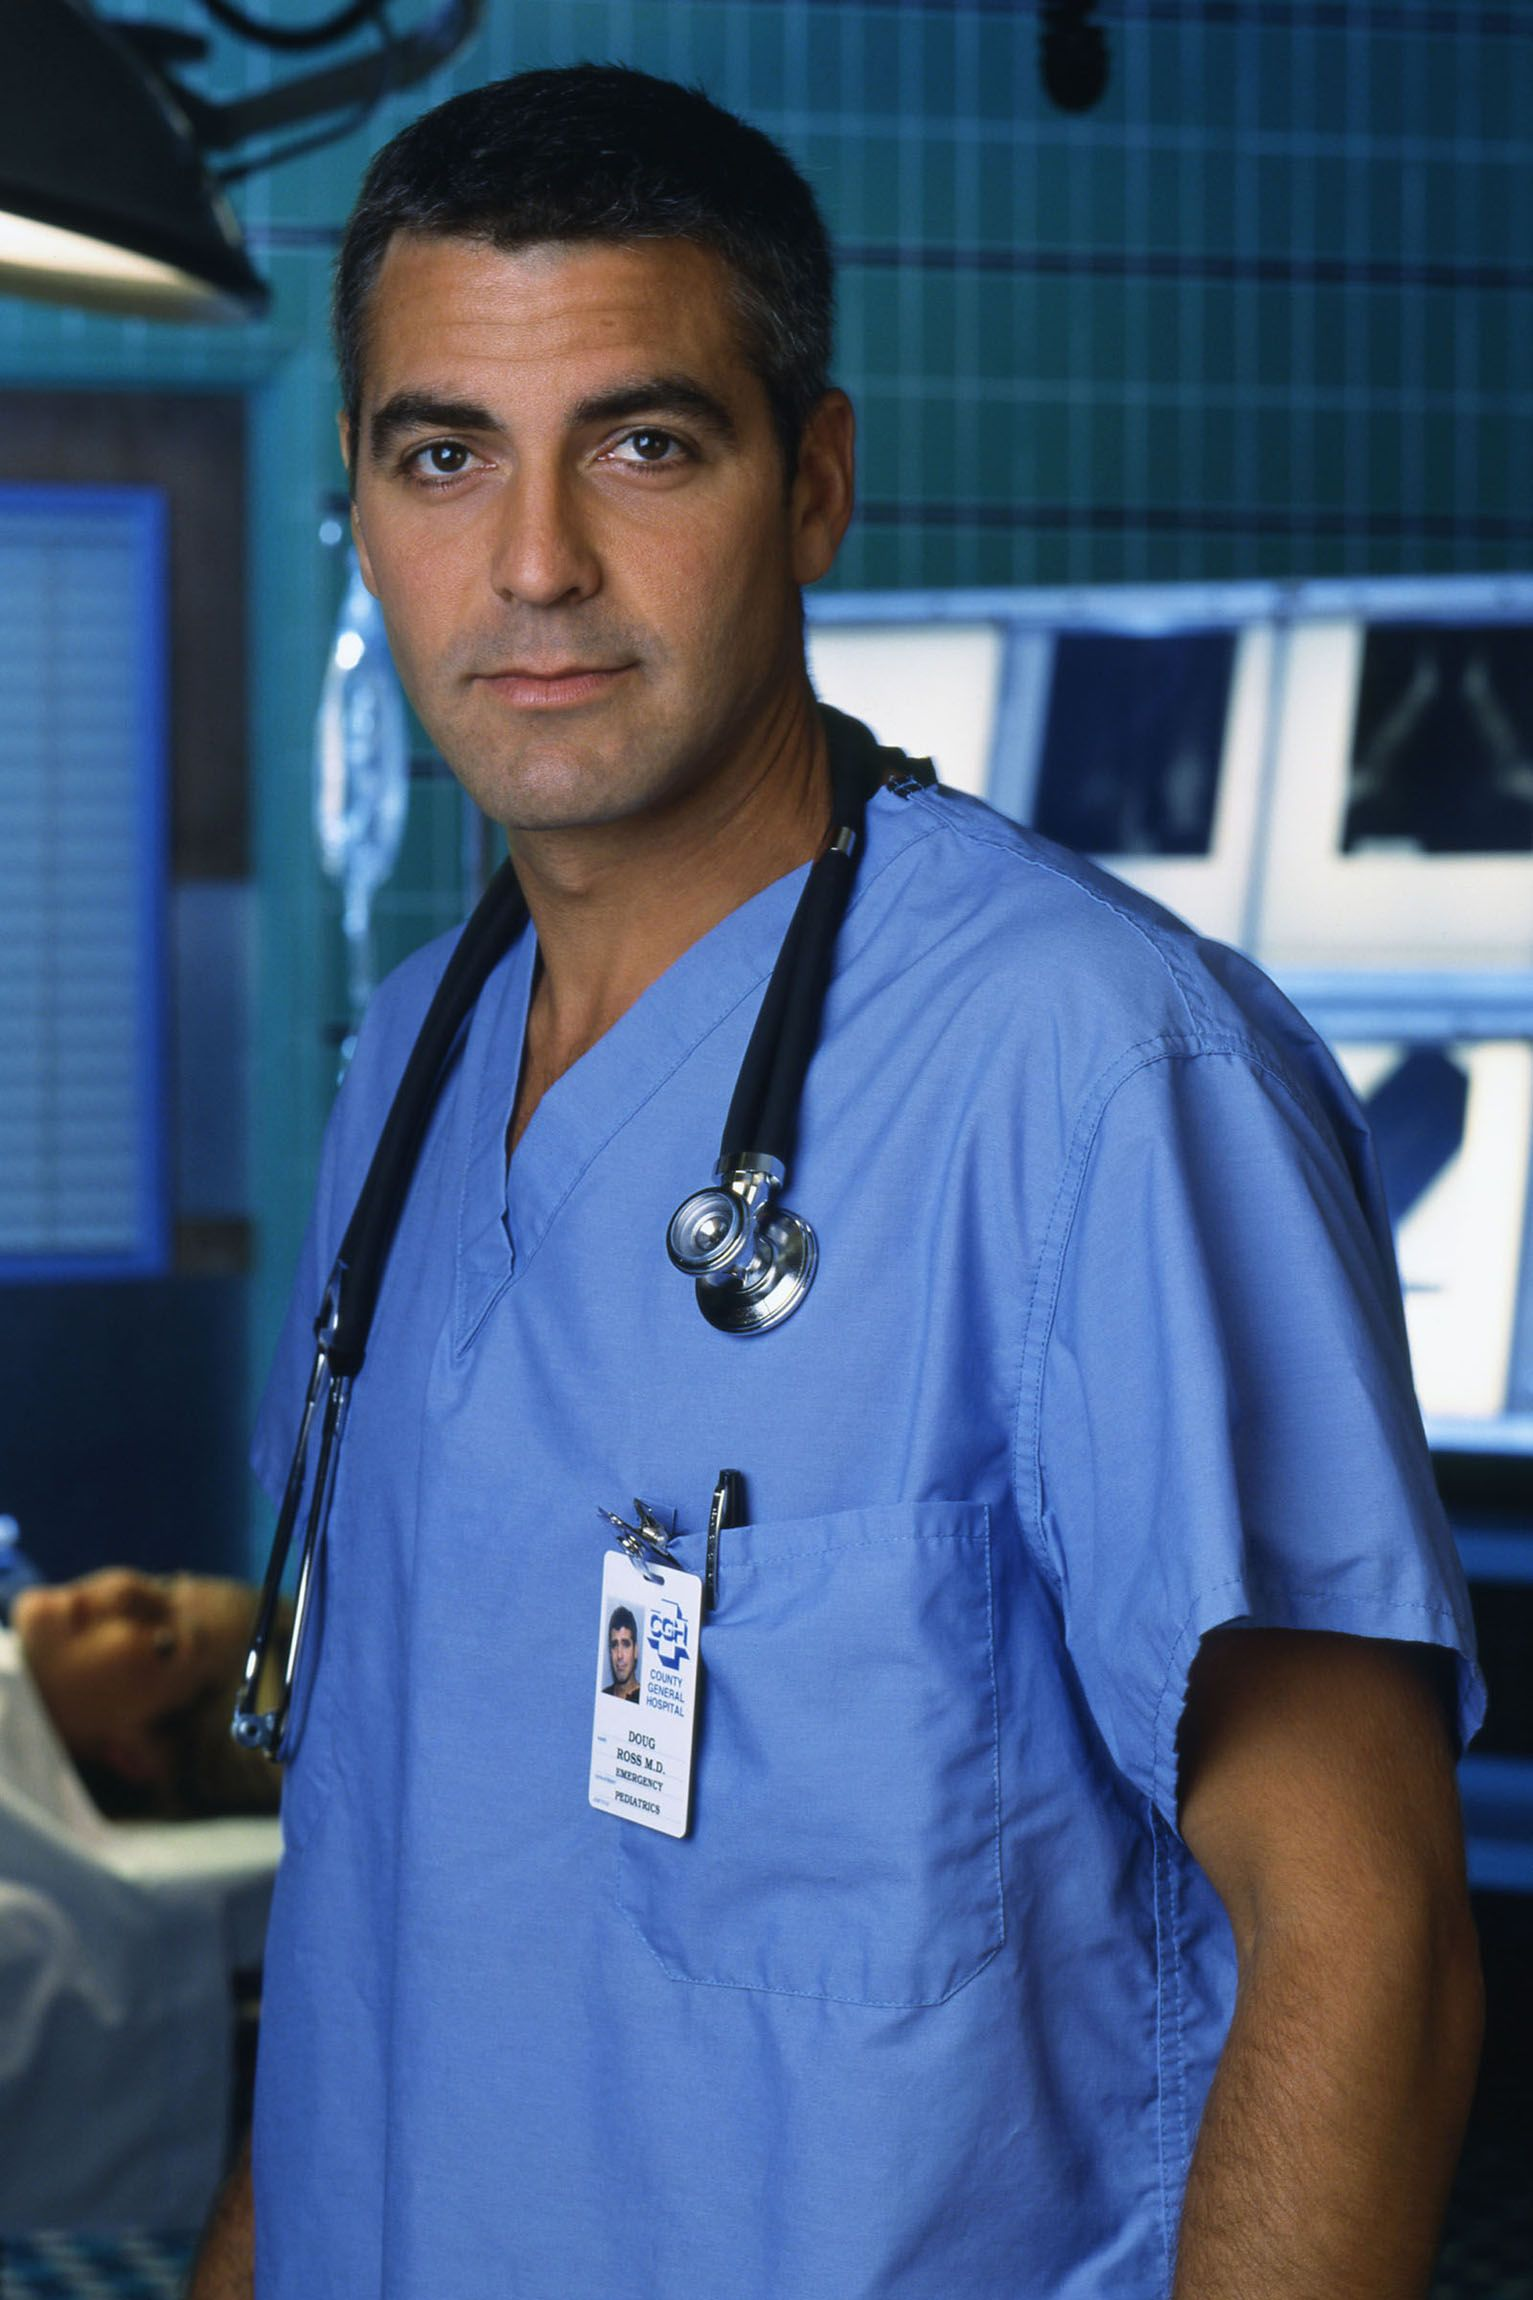 Clooney as Dr. Doug Ross on ER in 1990.